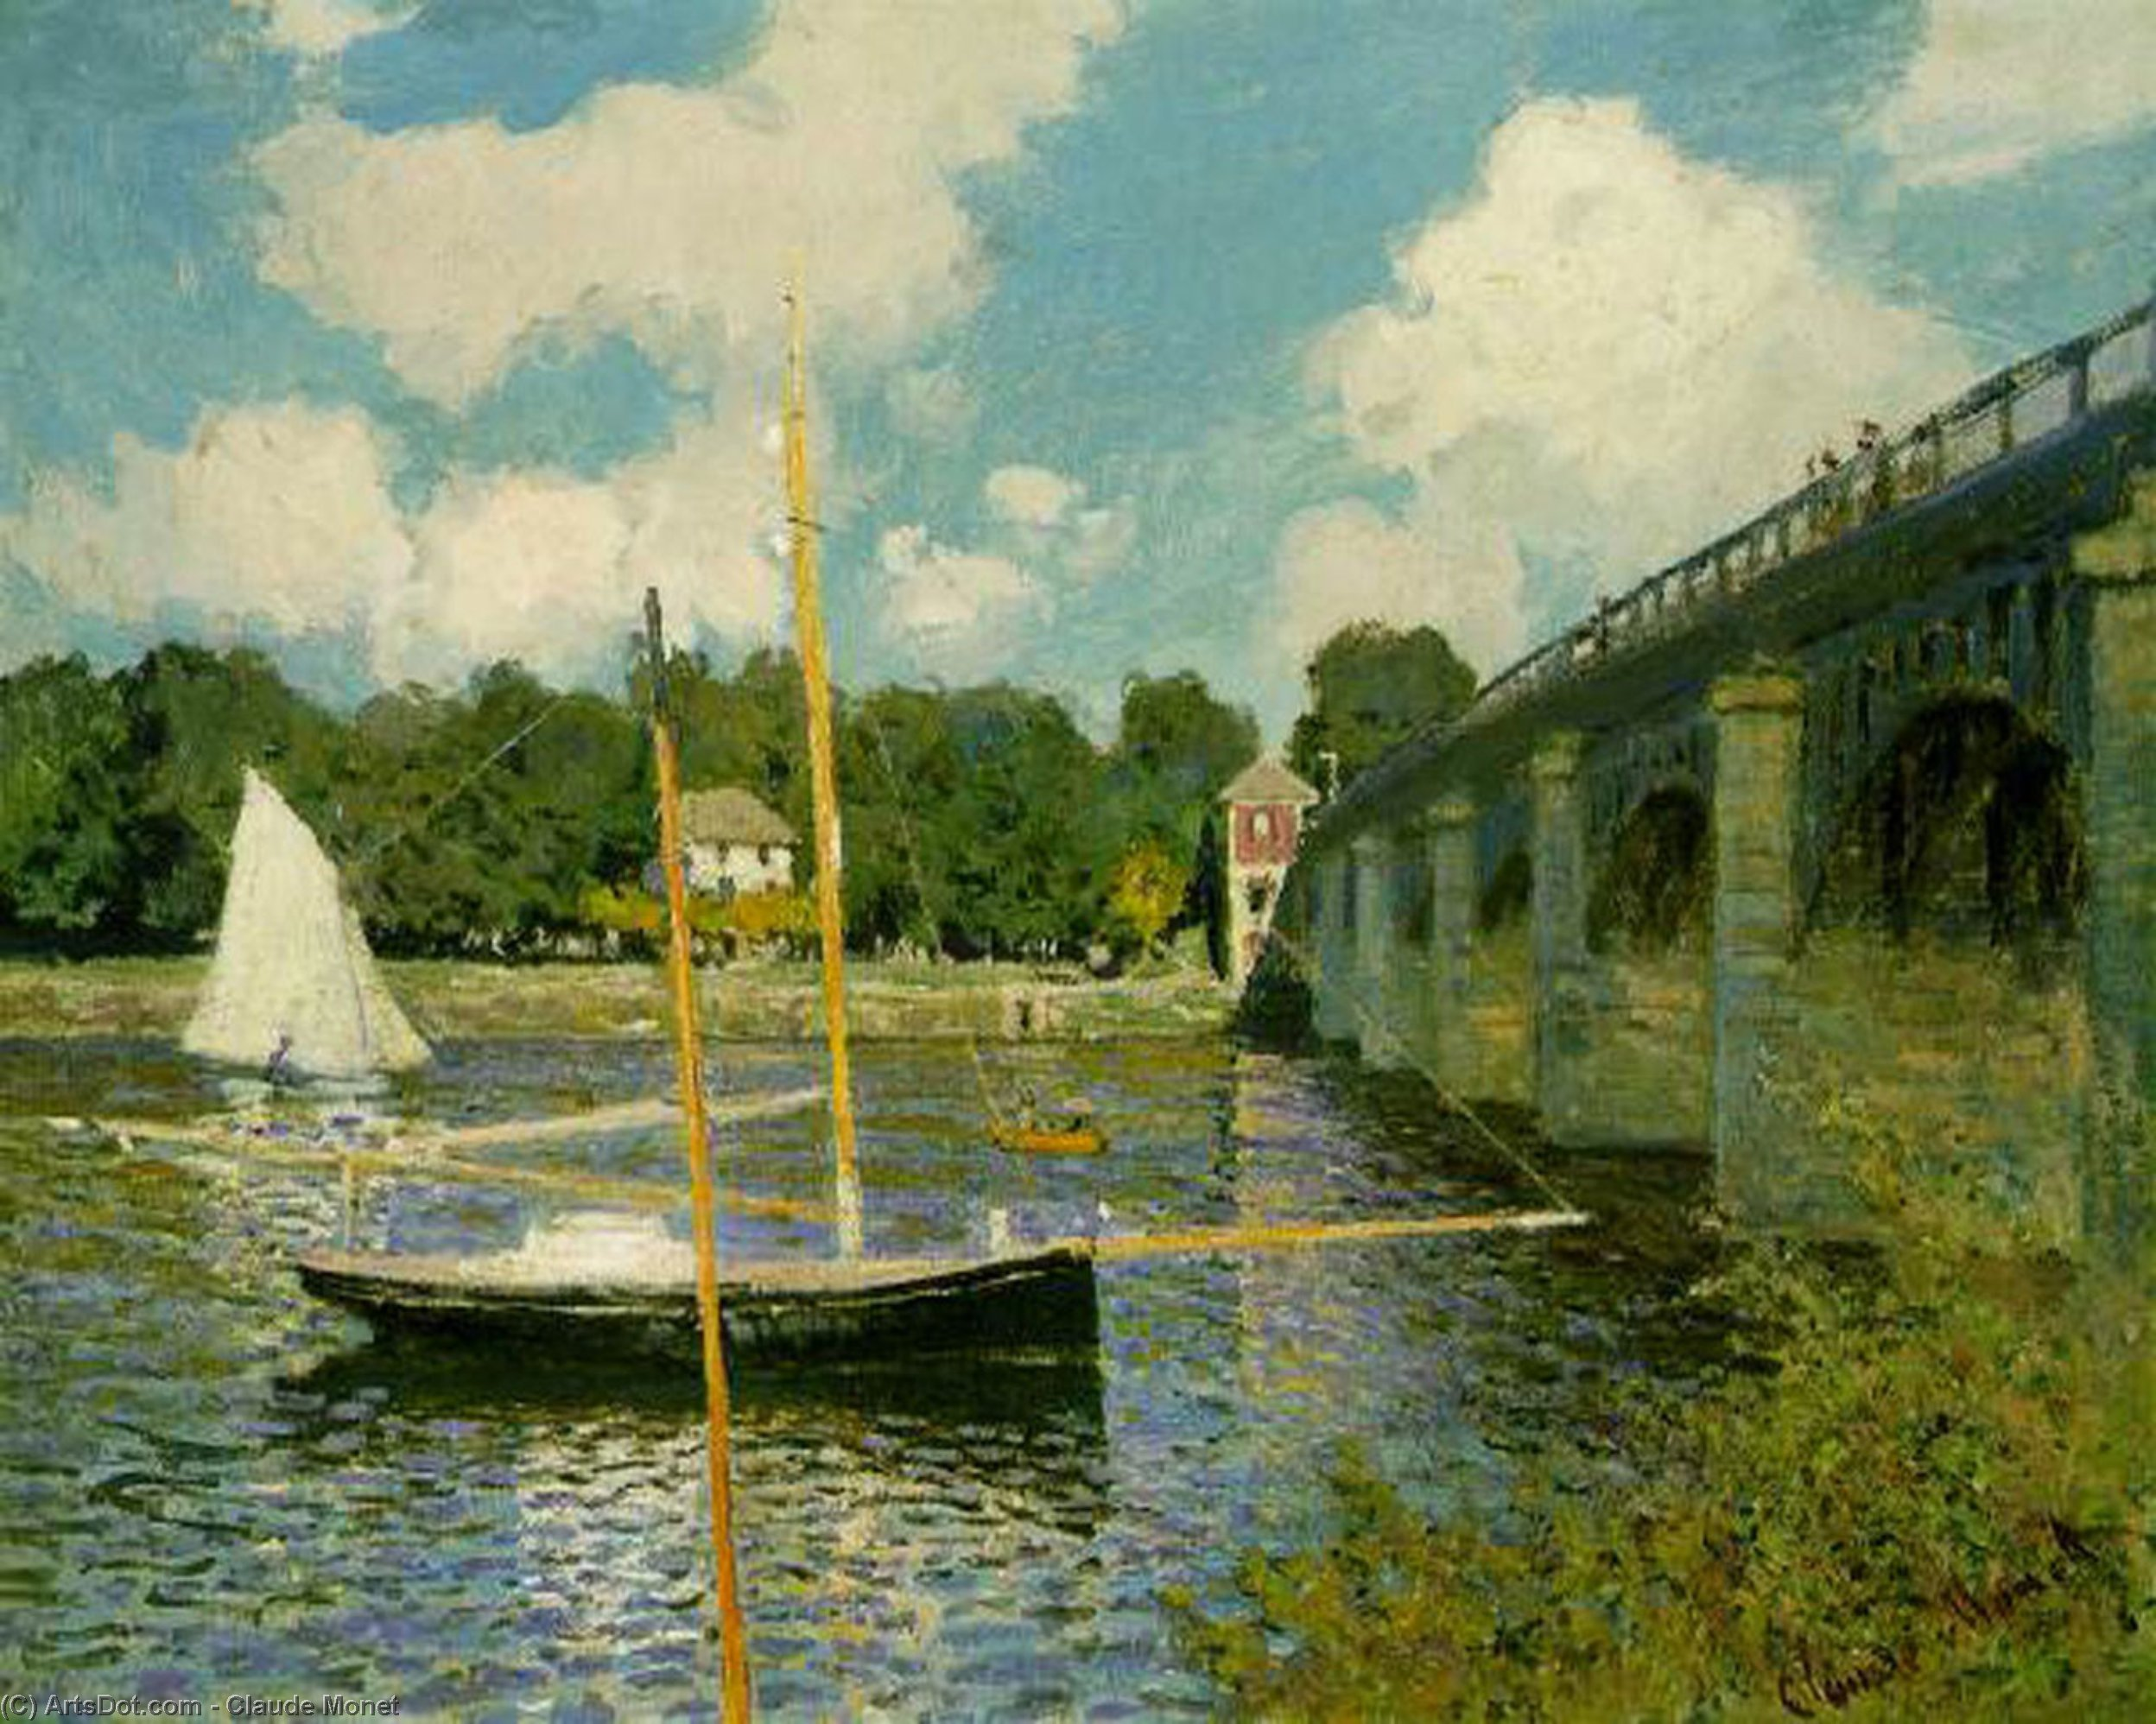 a description of the argenteuil as a suburban town on the outskirts of paris Monet : a bridge to modernity to argenteuil, a suburban town on the outskirts of the remarkable range of brides in paris -- publisher's description.